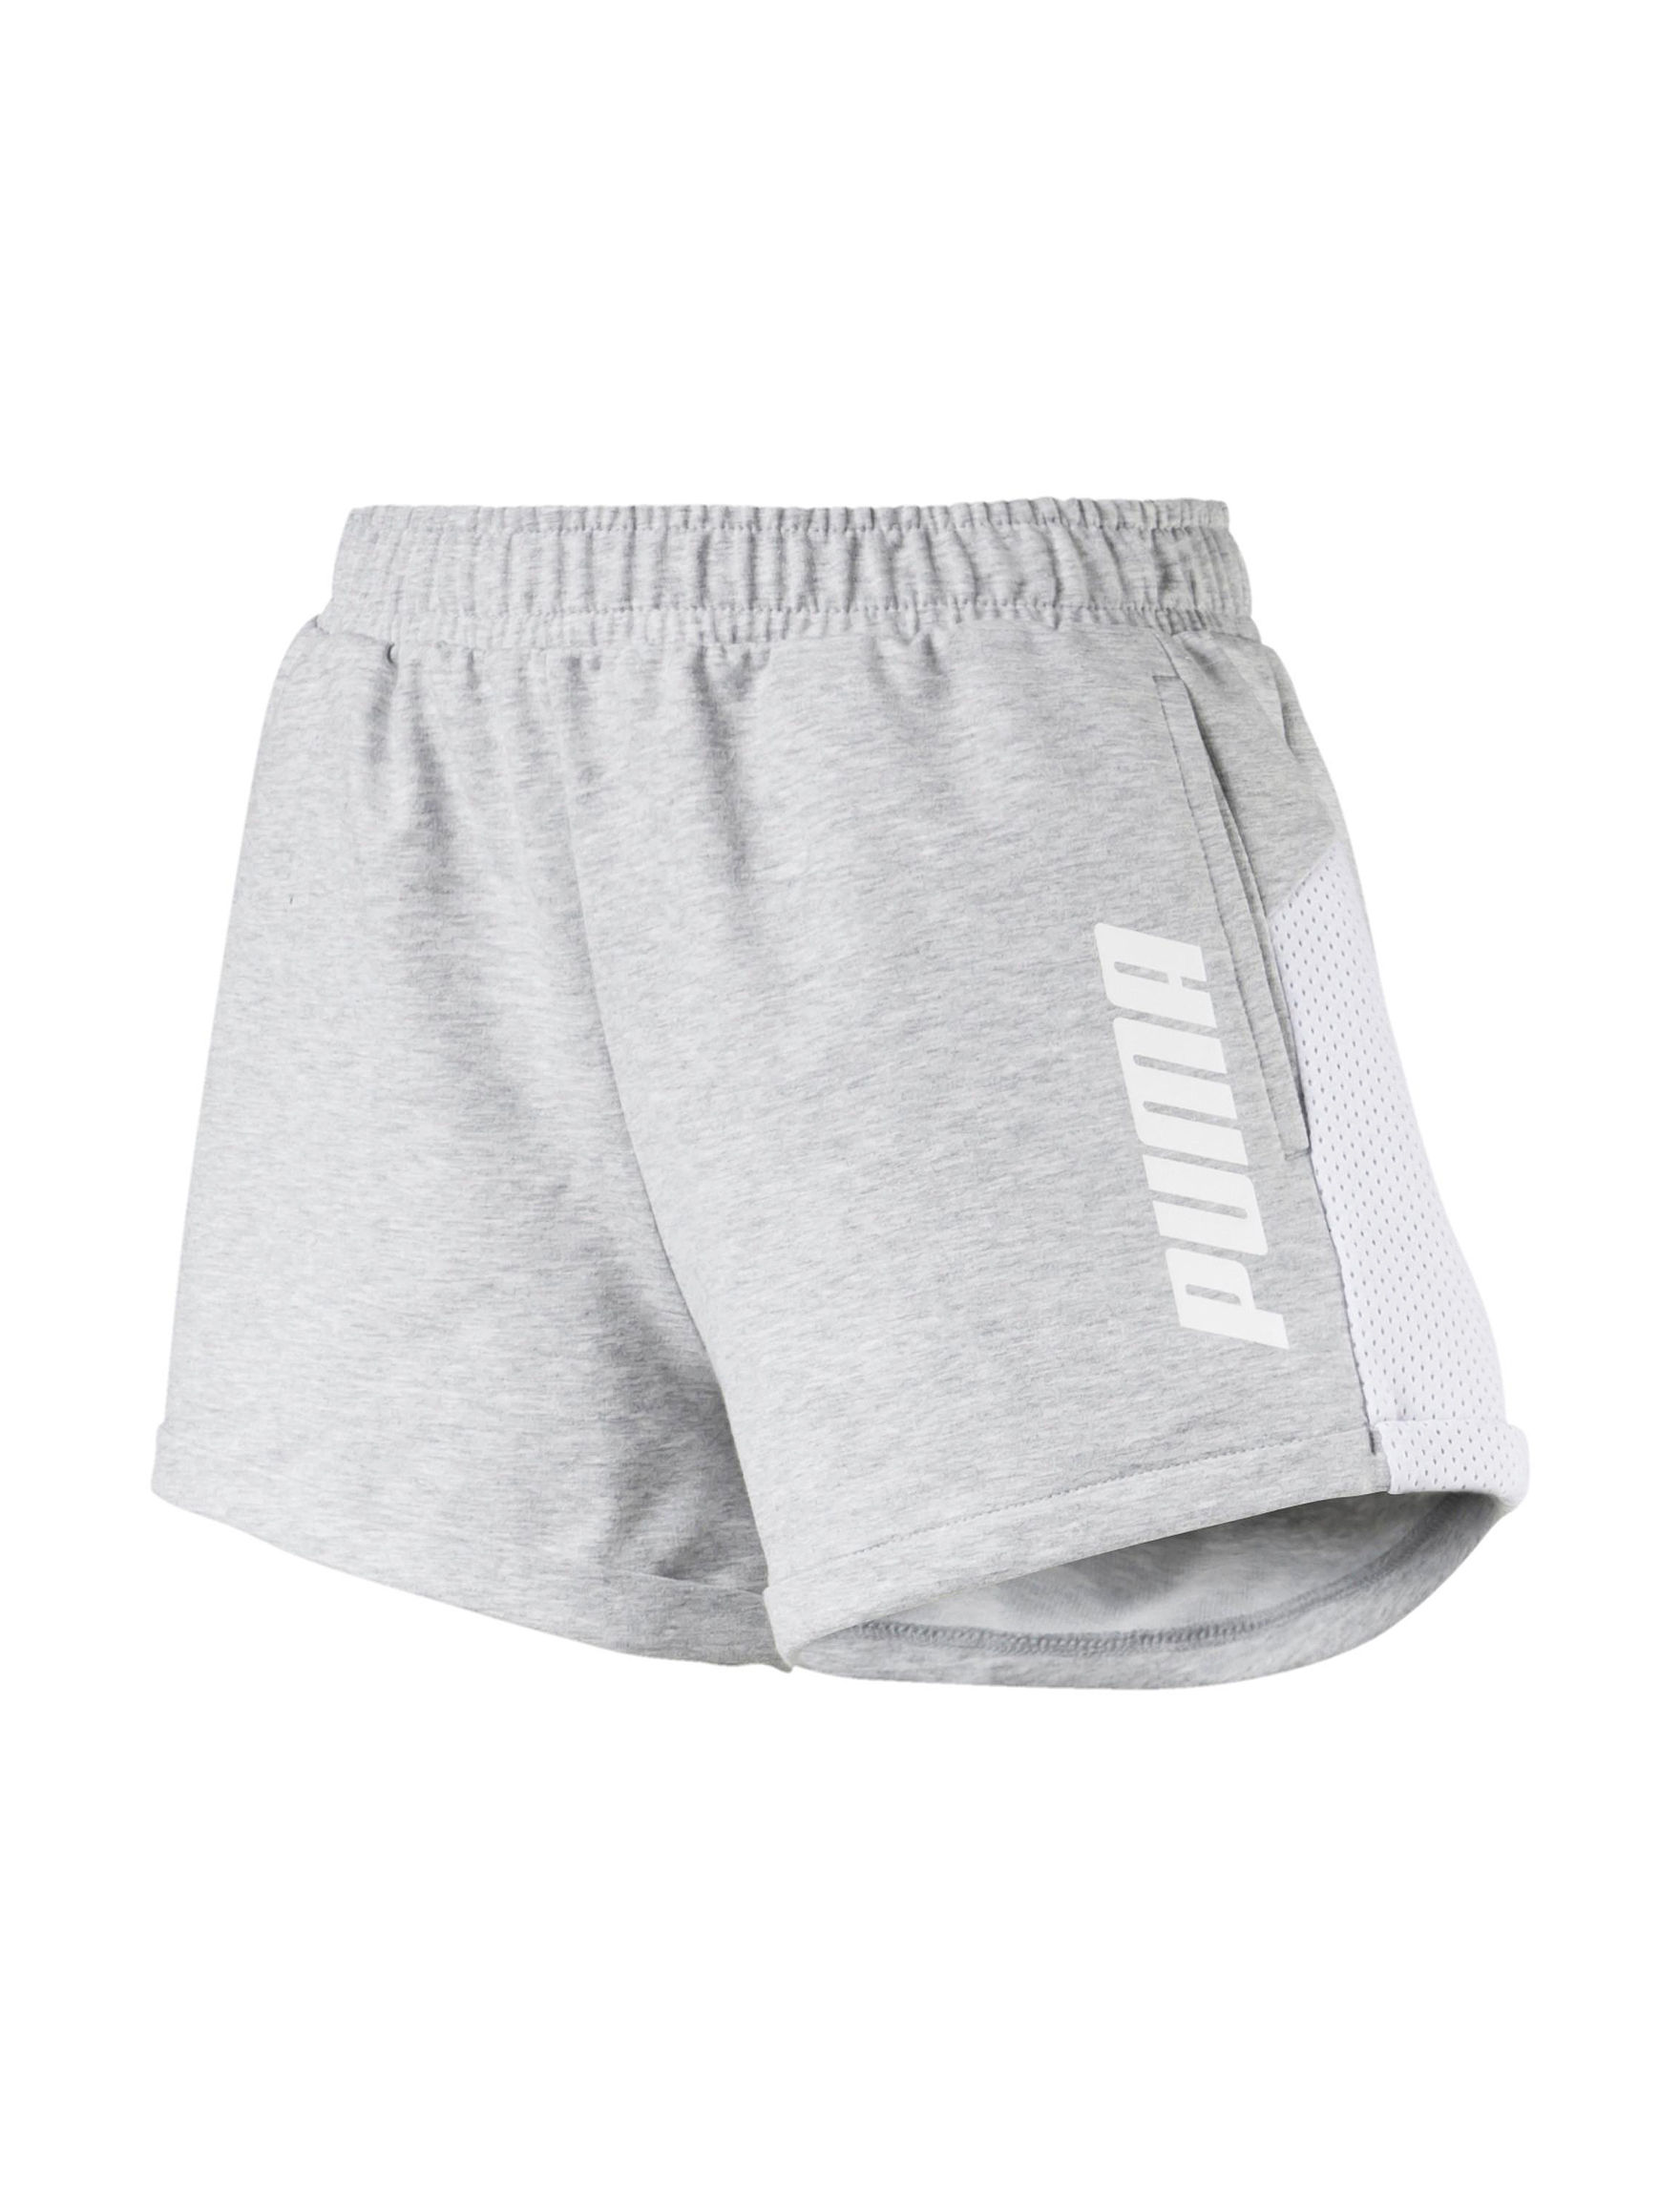 Puma Grey Active Soft Shorts